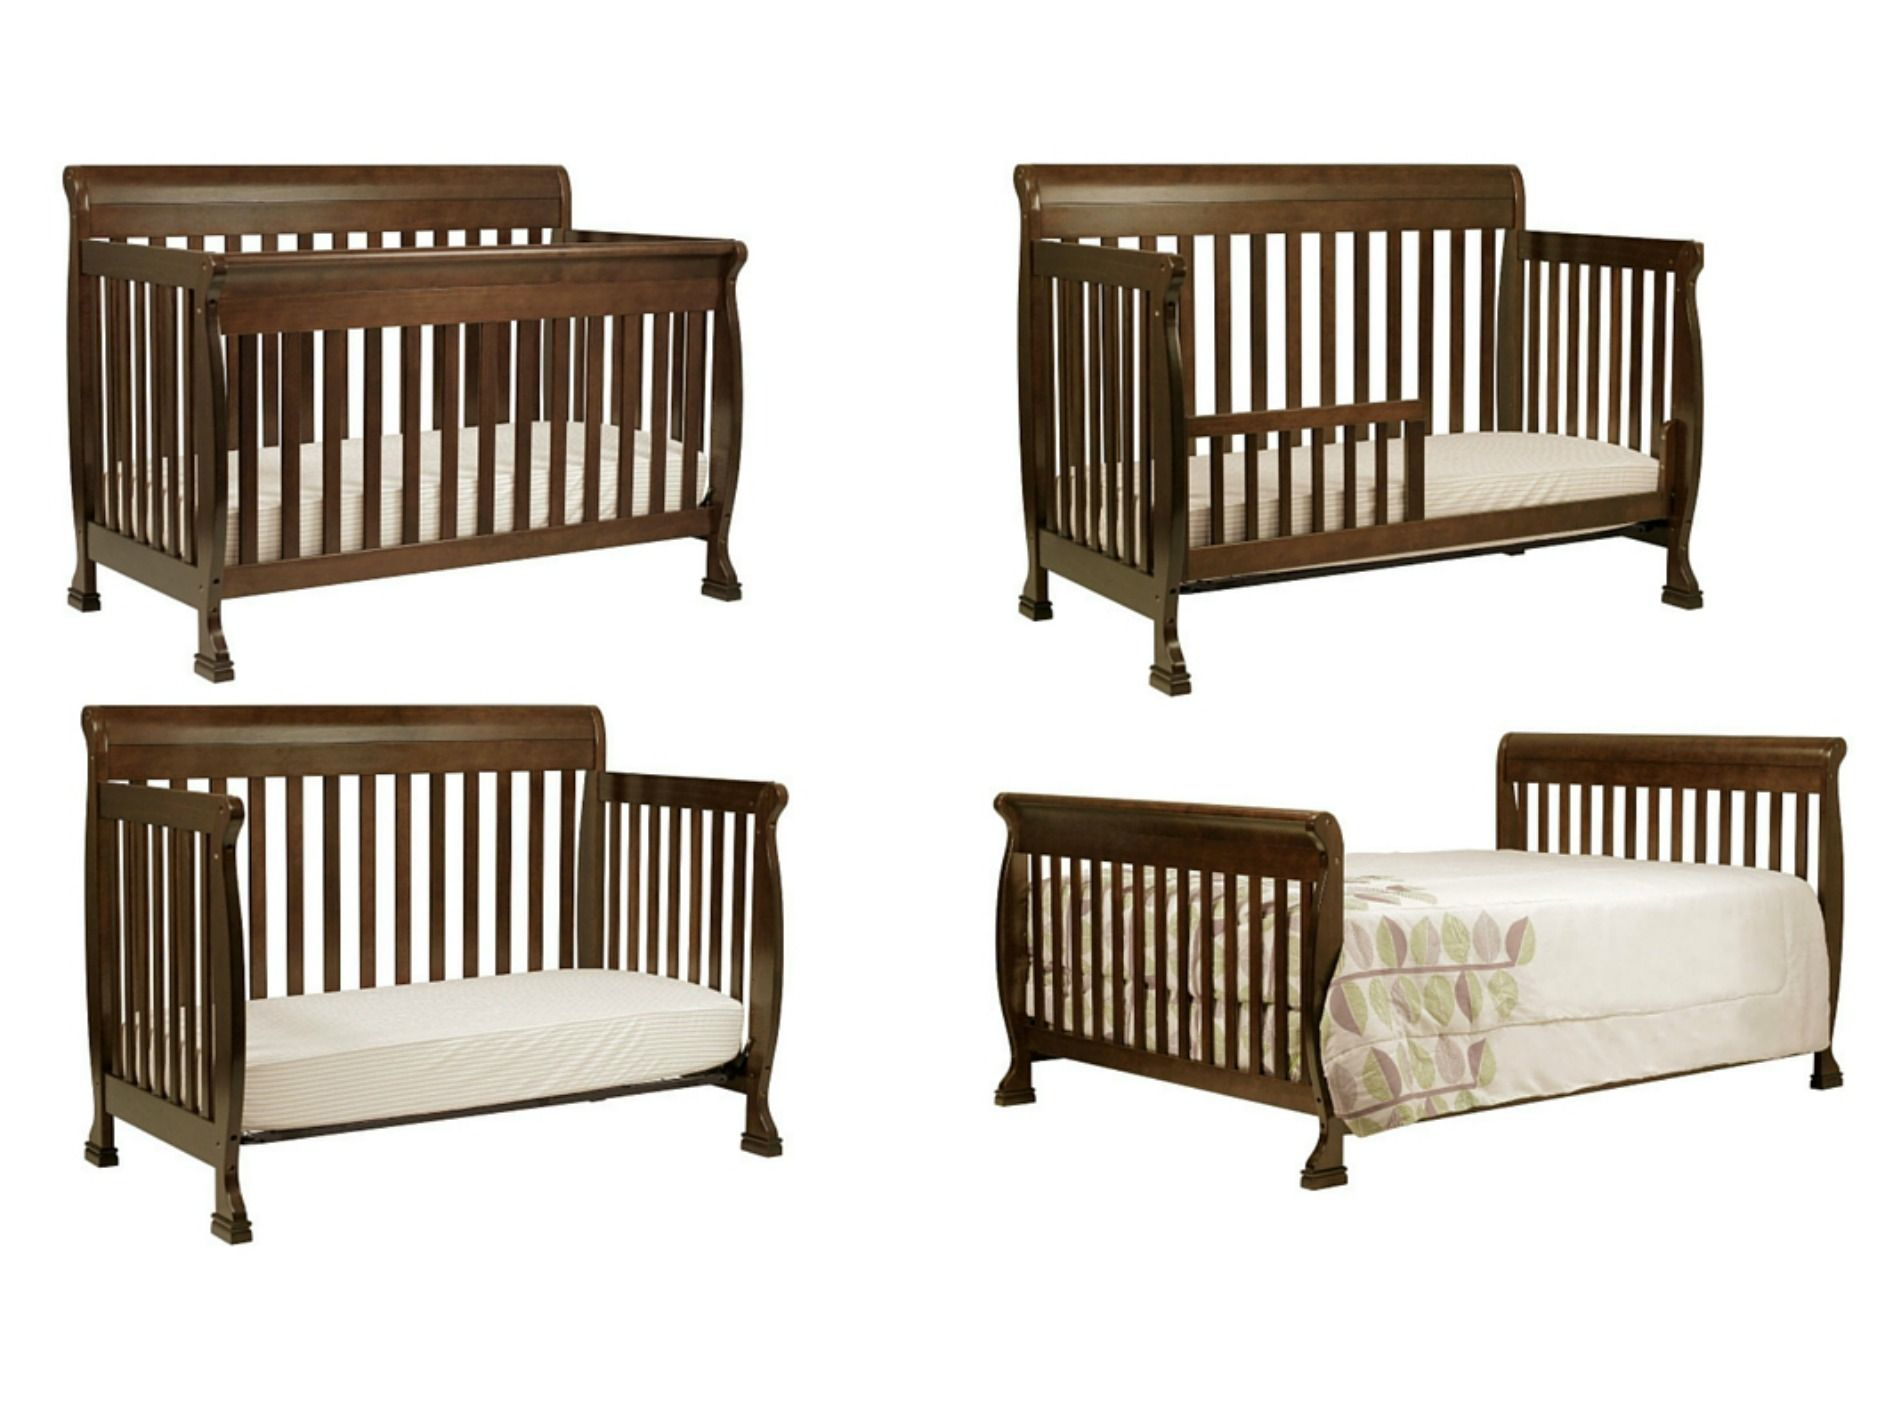 Our Top Baby Cribs Include The Davinci Kalani 4 In 1 Convertible Crib Why We Love It A Bestseller And Award Winning The Da Cribs Convertible Crib Baby Cribs